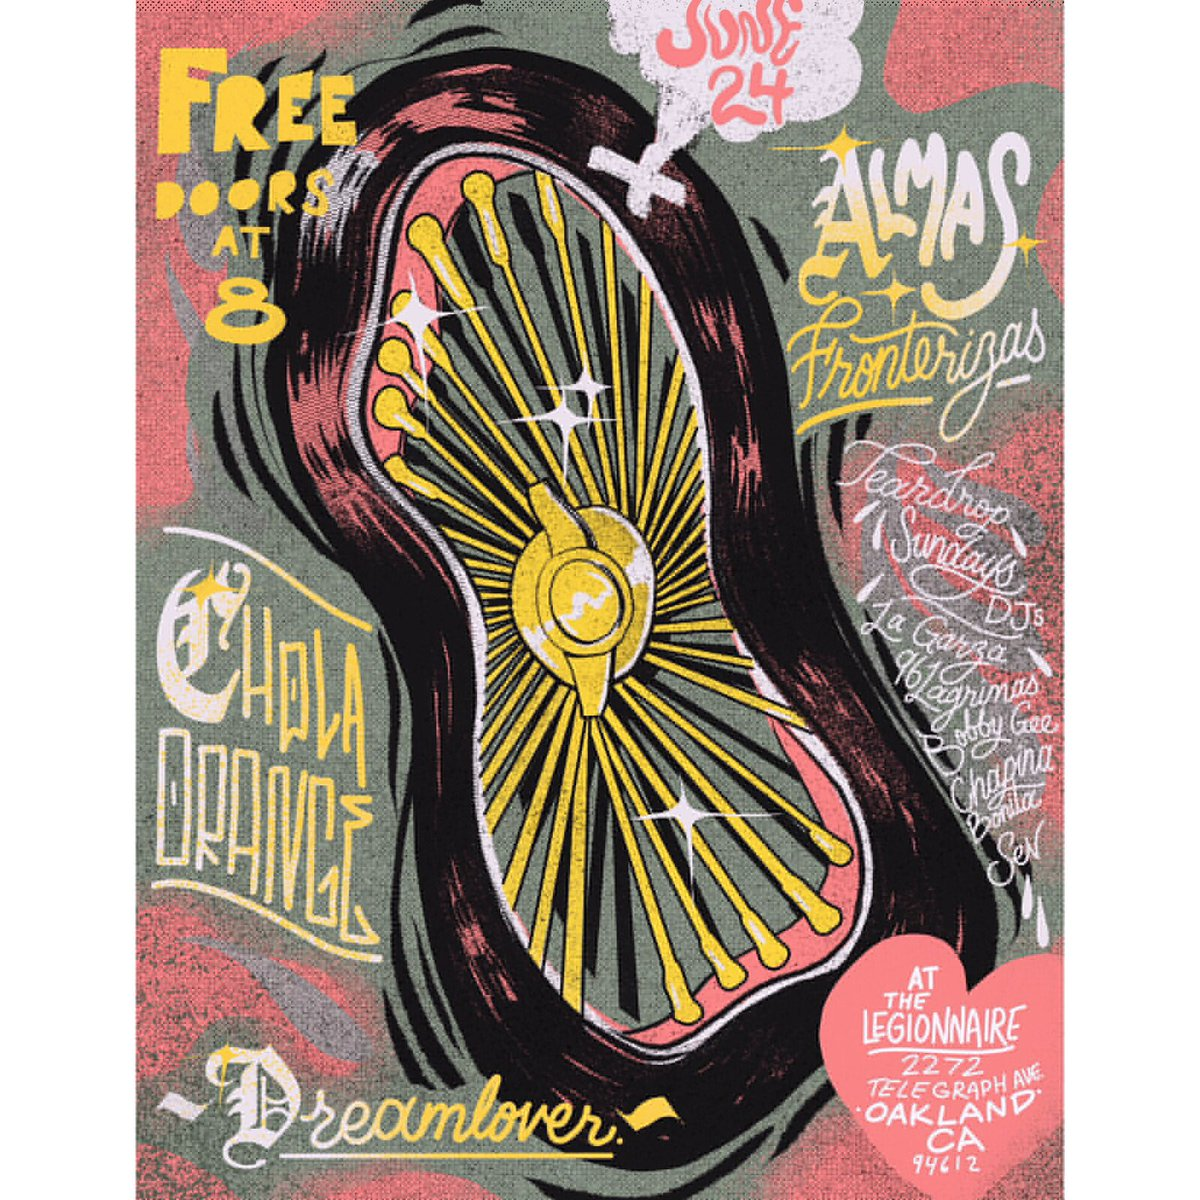 Sunday night @AFronterizas is at Legionnaire Oakland with Teardrop Sunday DJ's in between sets from @CholaOrange &amp; Dream Lover. 21+ Free!<br>http://pic.twitter.com/xx1nsBHYDV